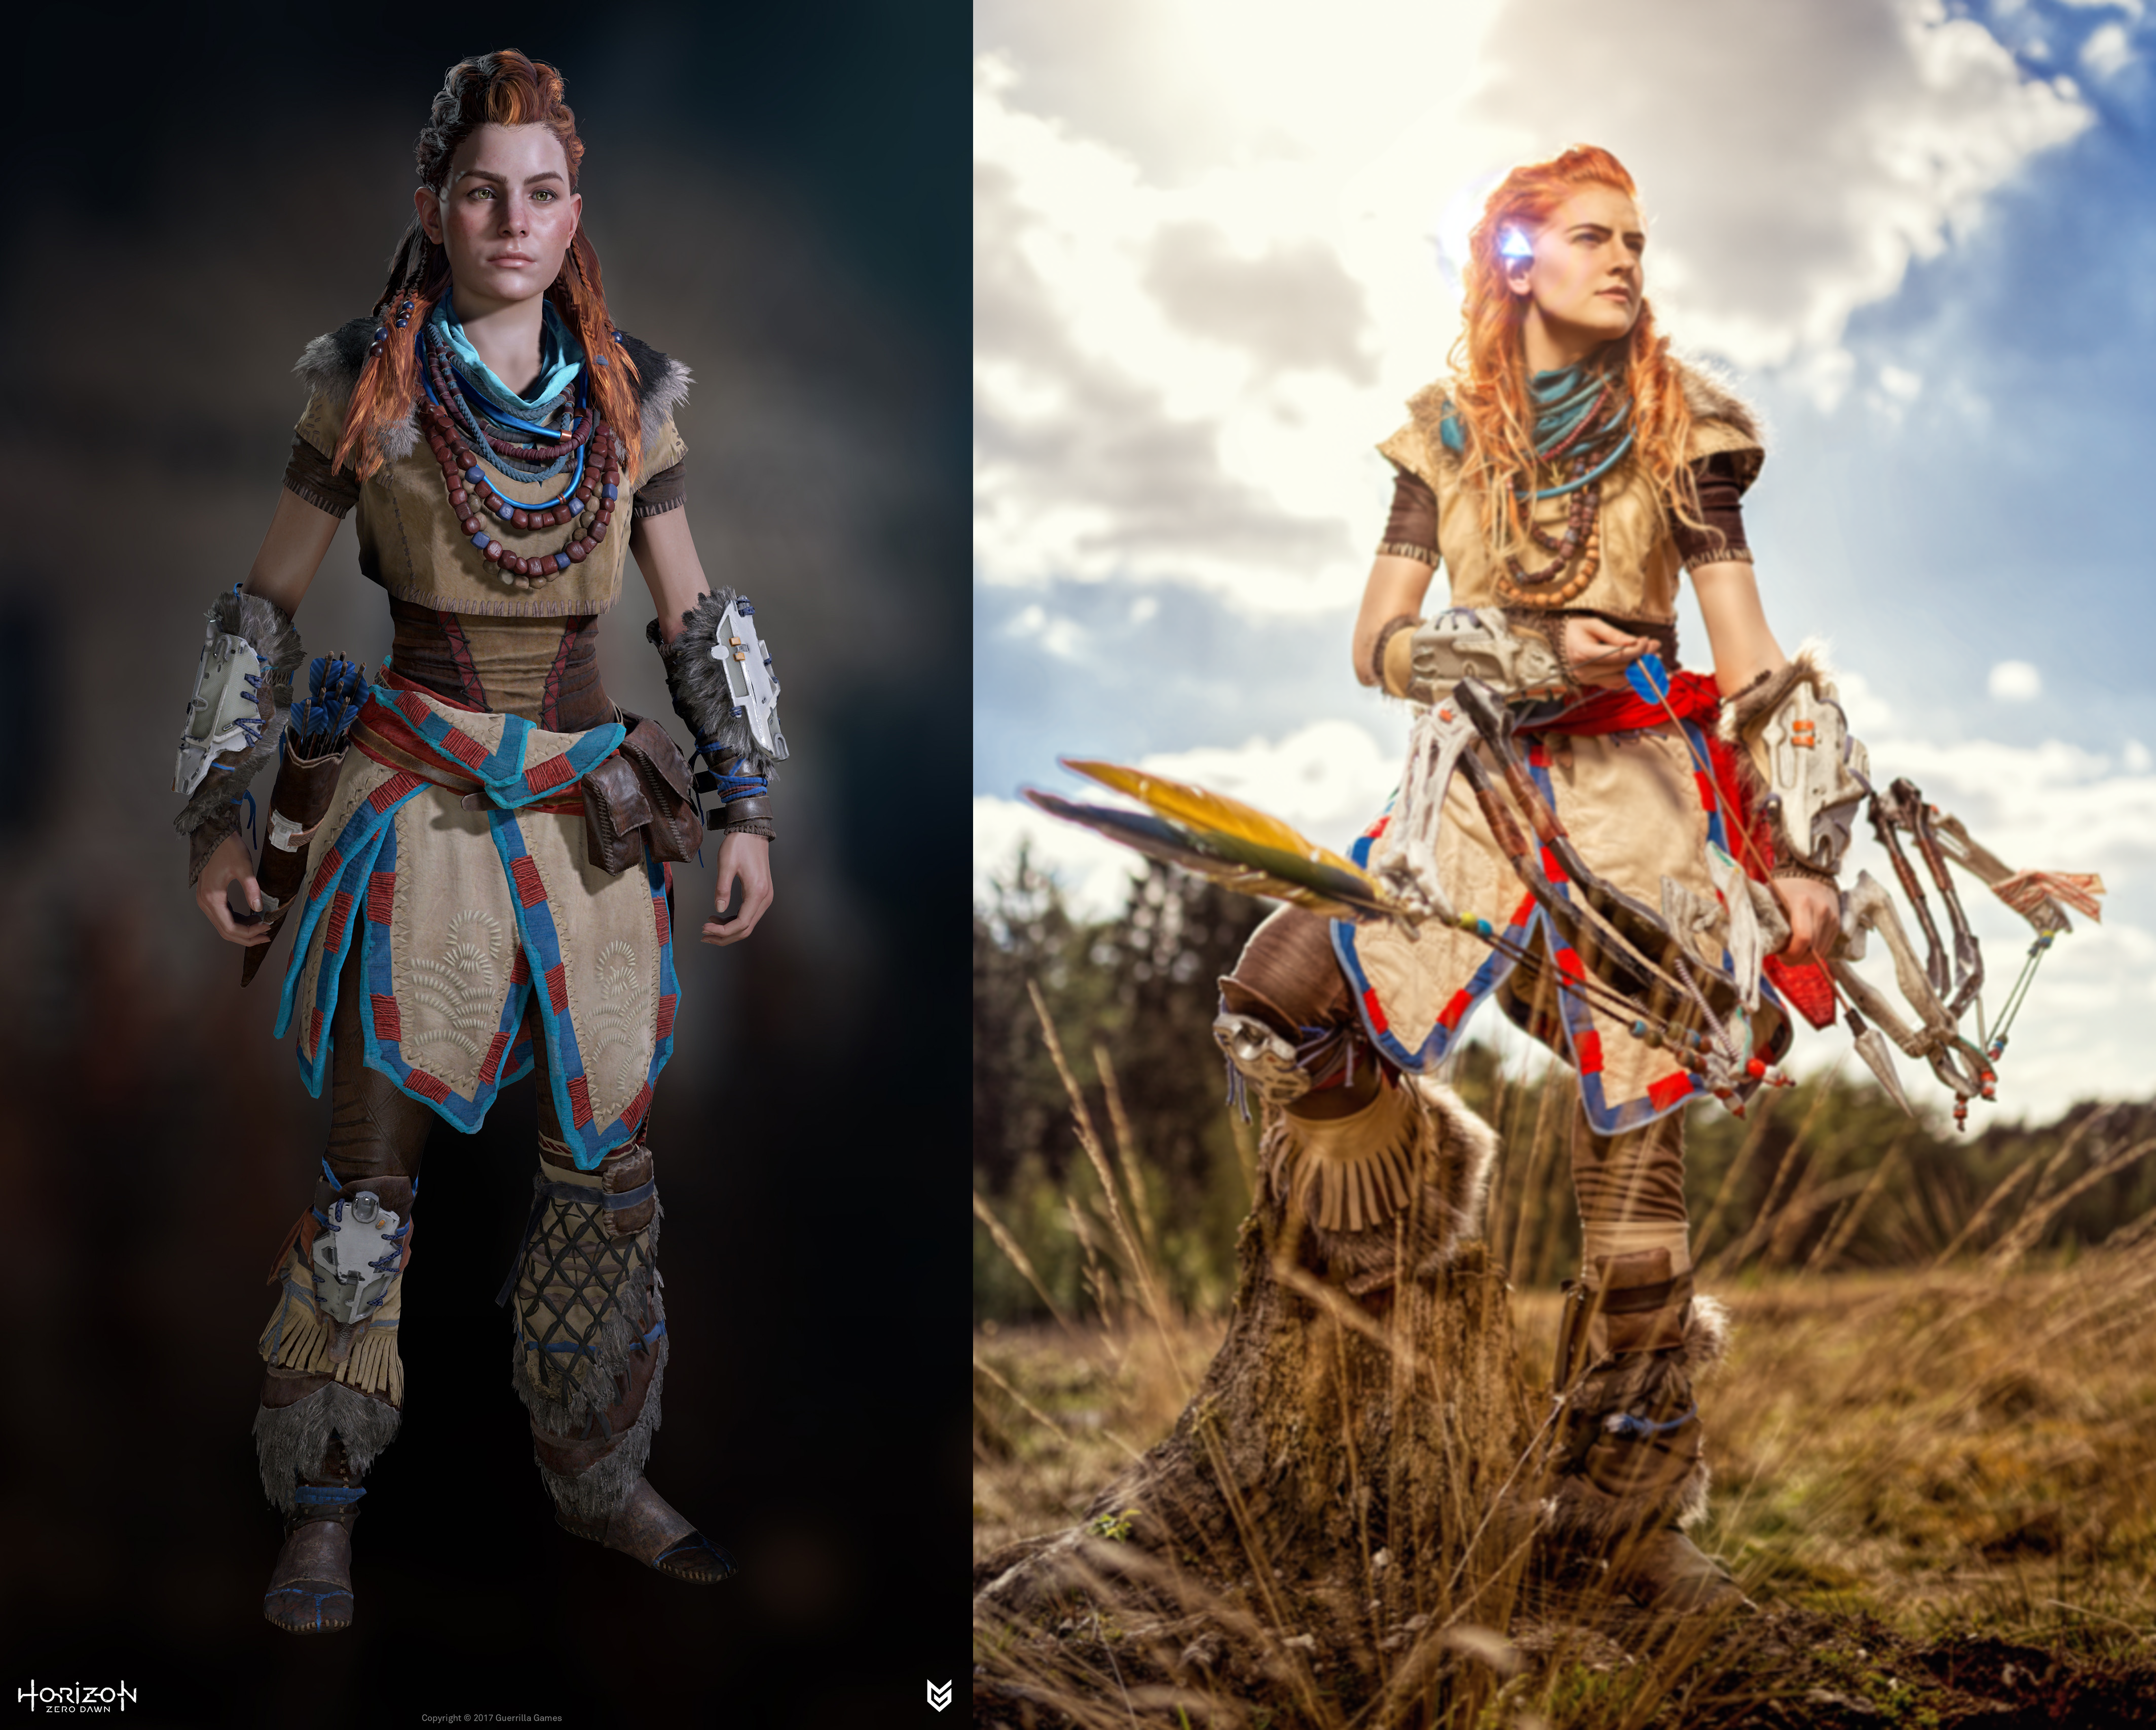 Image of the character Aloy next to MsSkunk in cosplay as Alloy